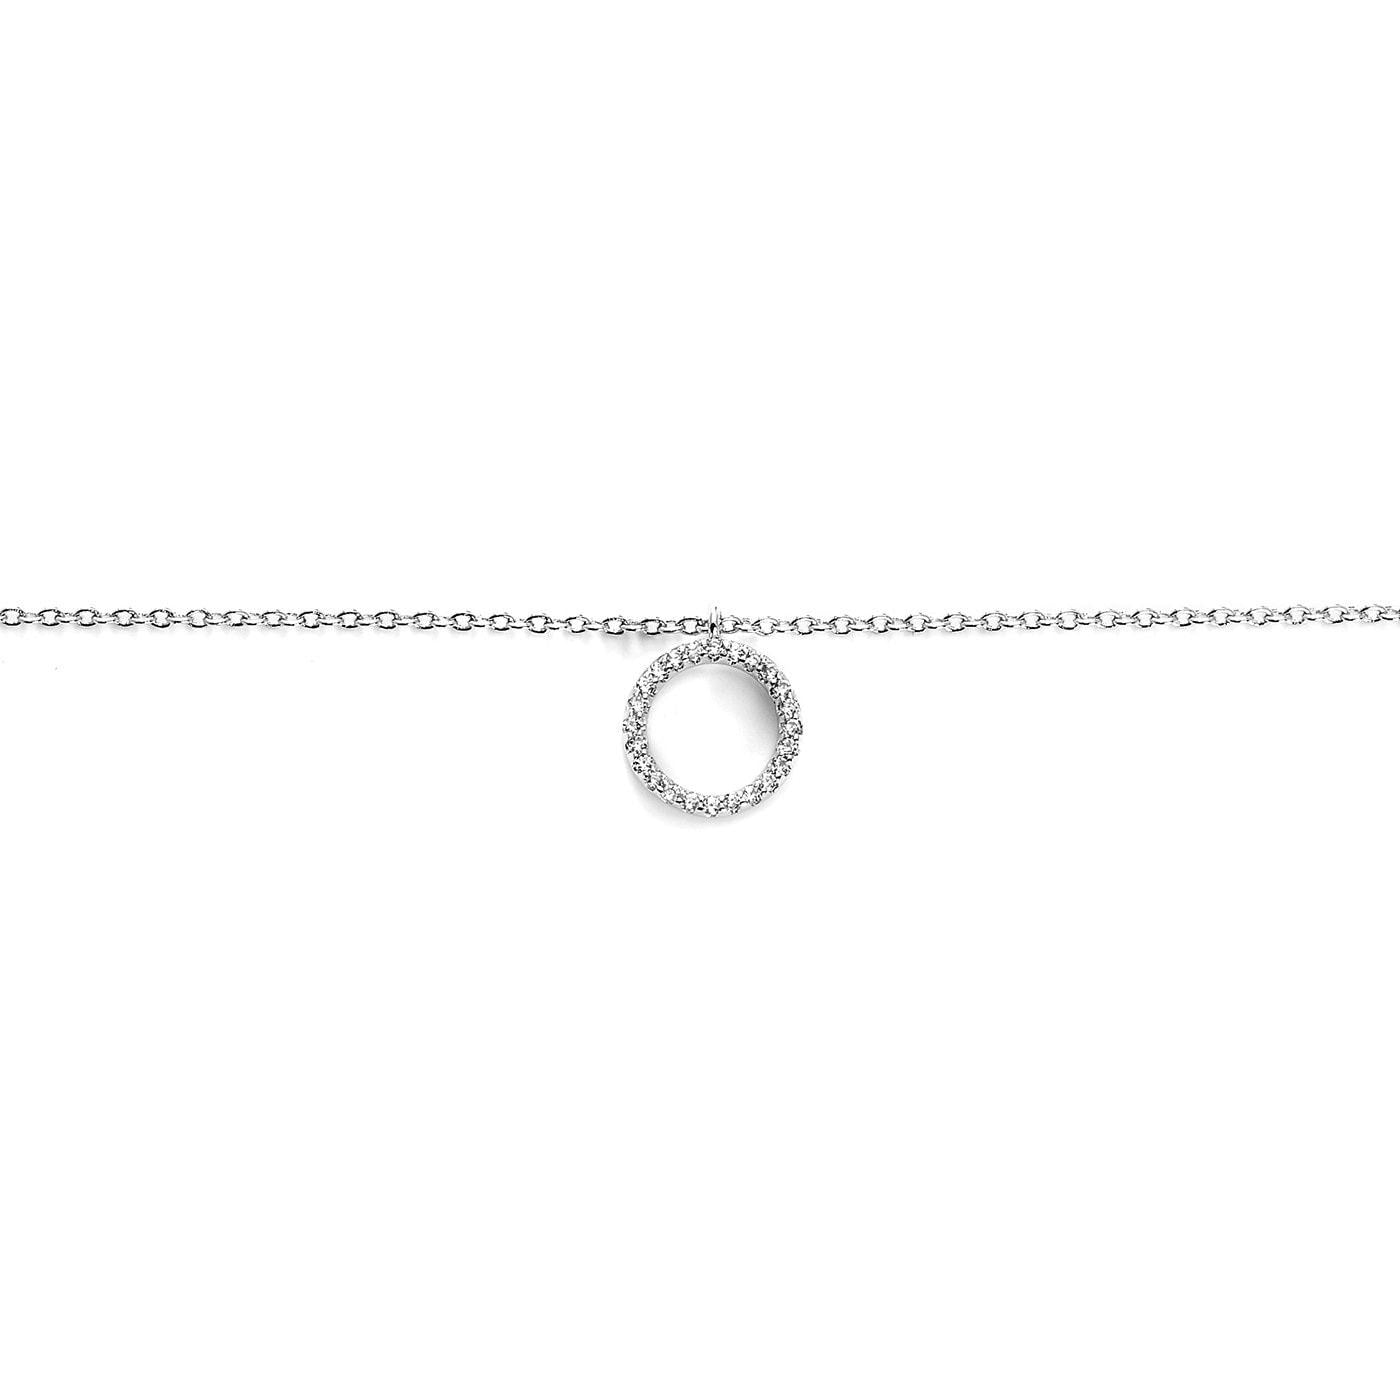 Your Initial O Necklace-Blinglane